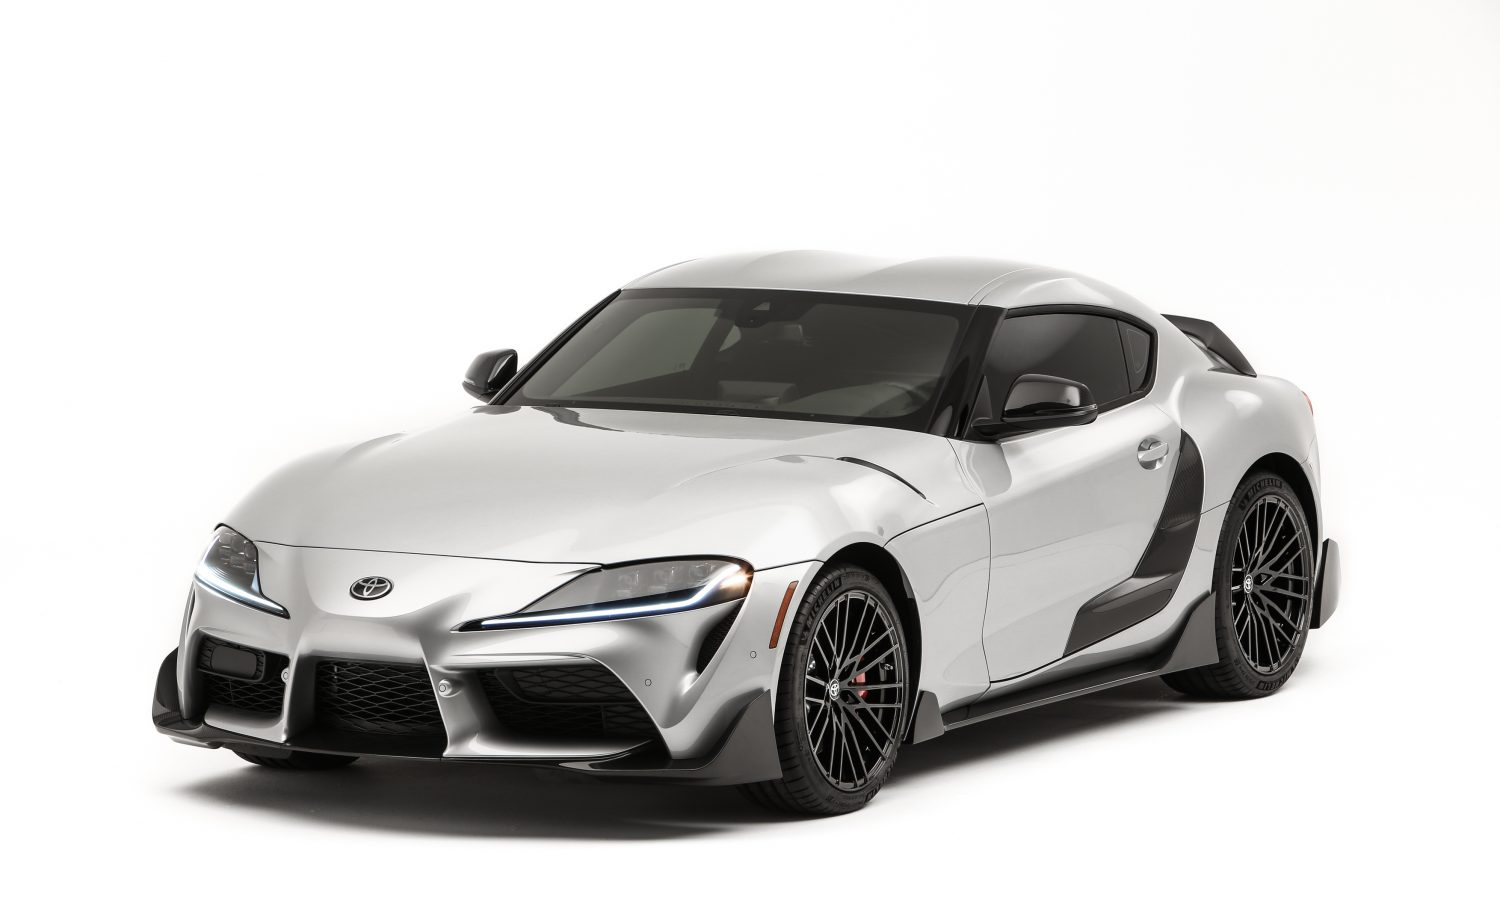 TCD Brings Its GR Supra Performance Line Concept To SEMA 2019